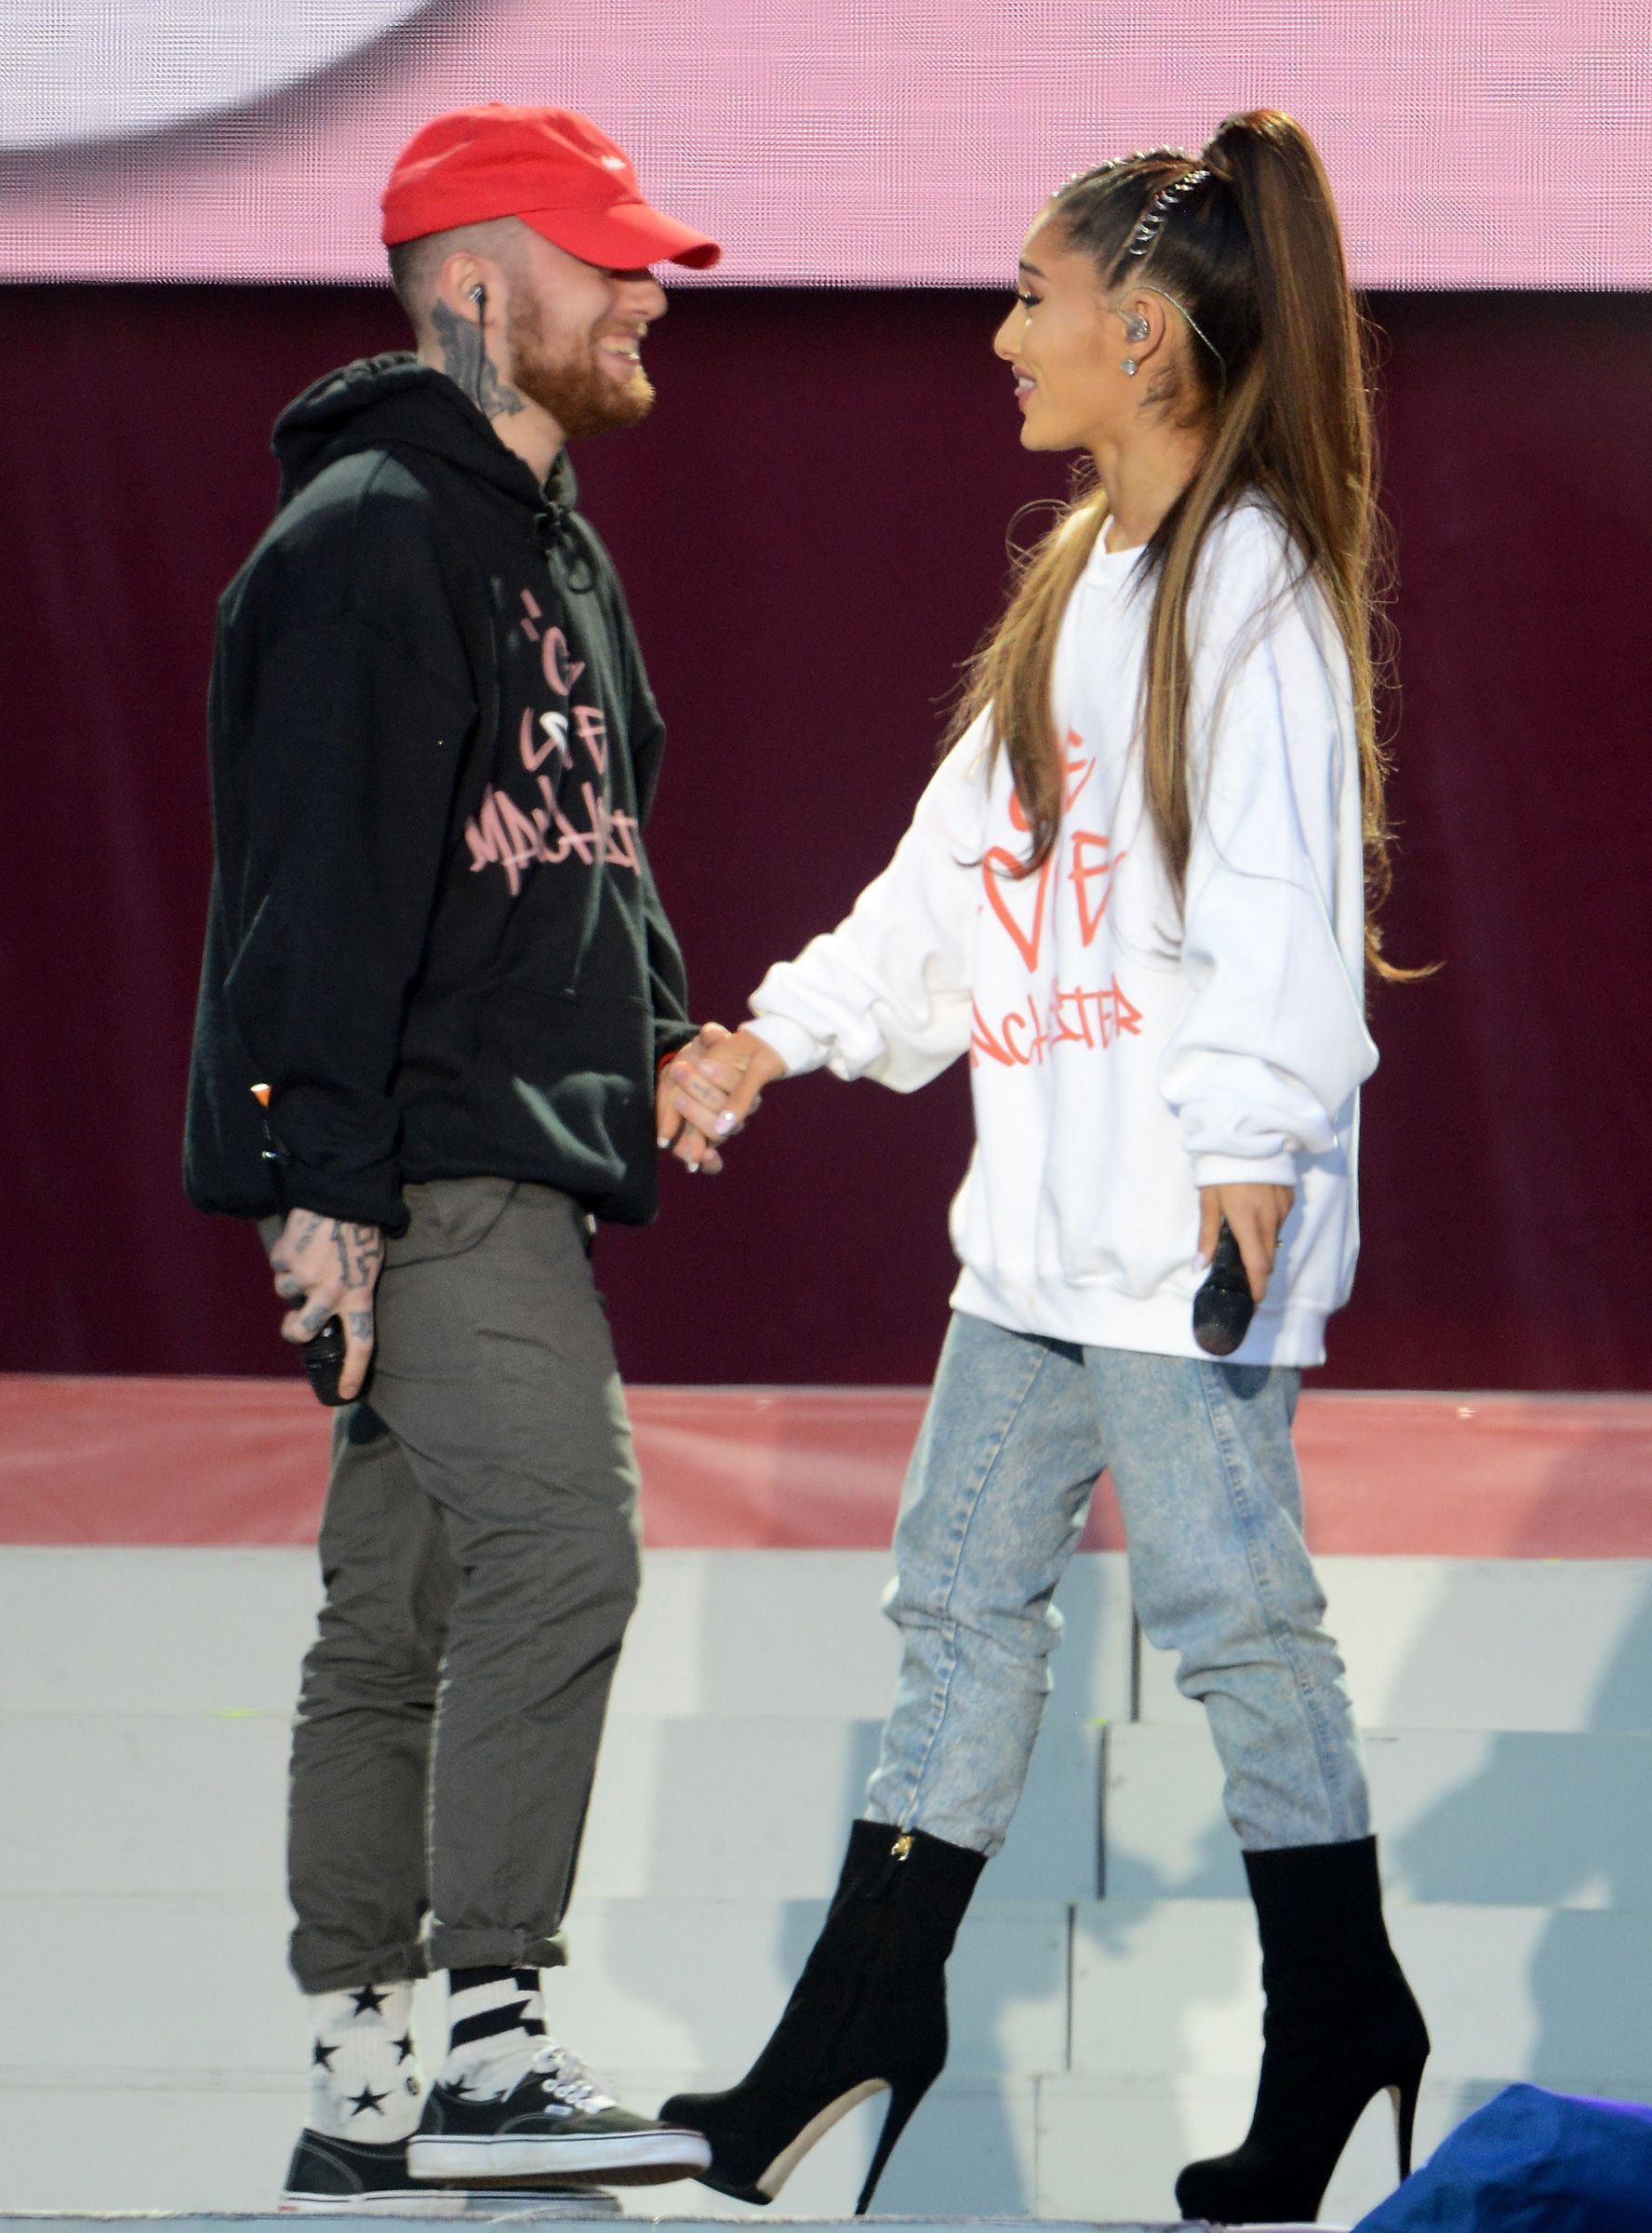 Ariana Grande Paid Tribute To Mac Miller On What Would Be His 27th Birthday